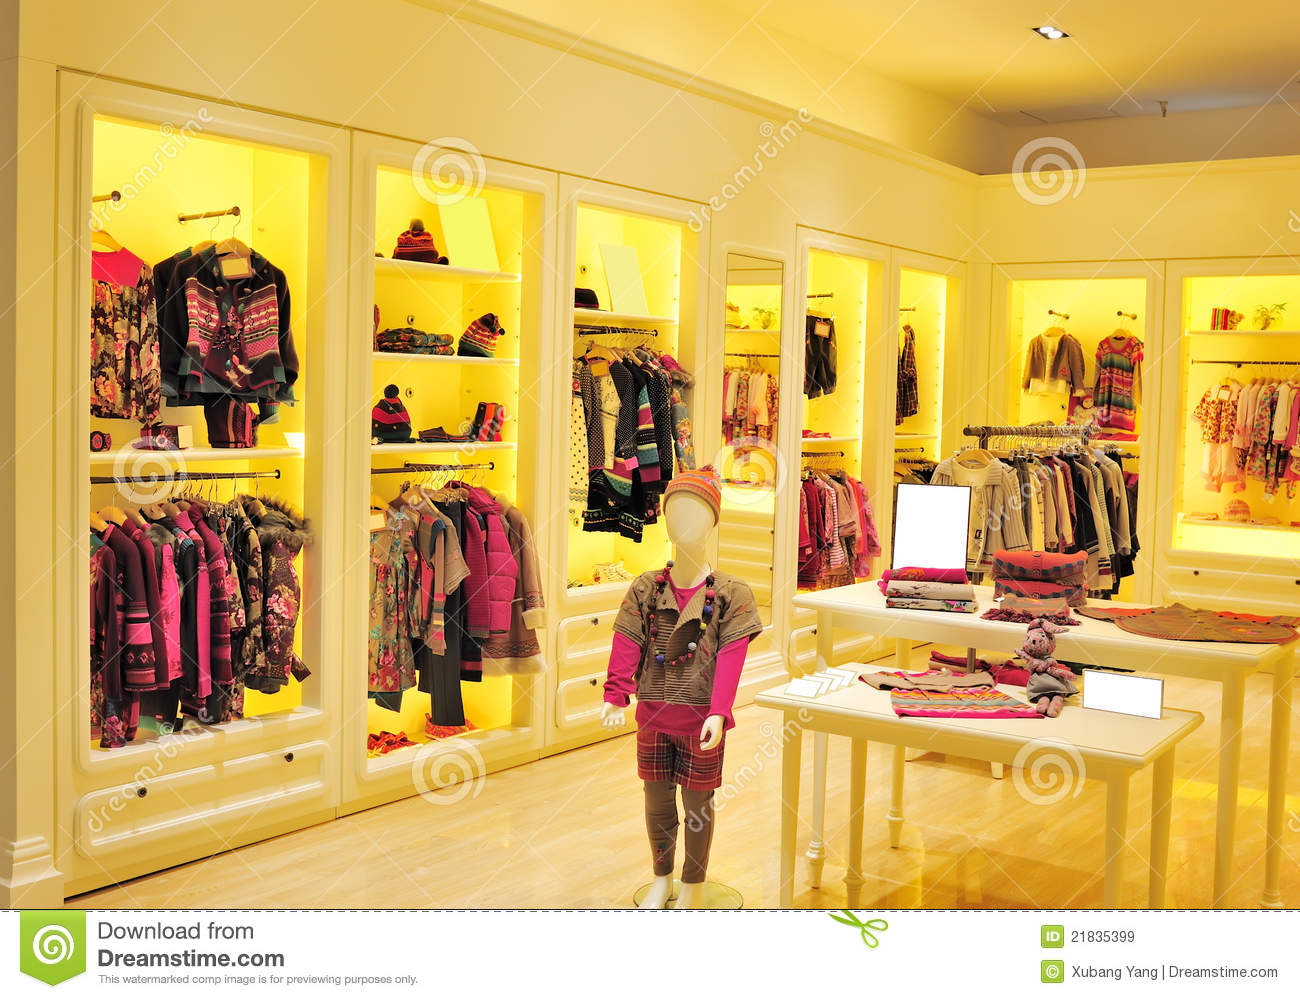 Select quality brands for your women's clothing store